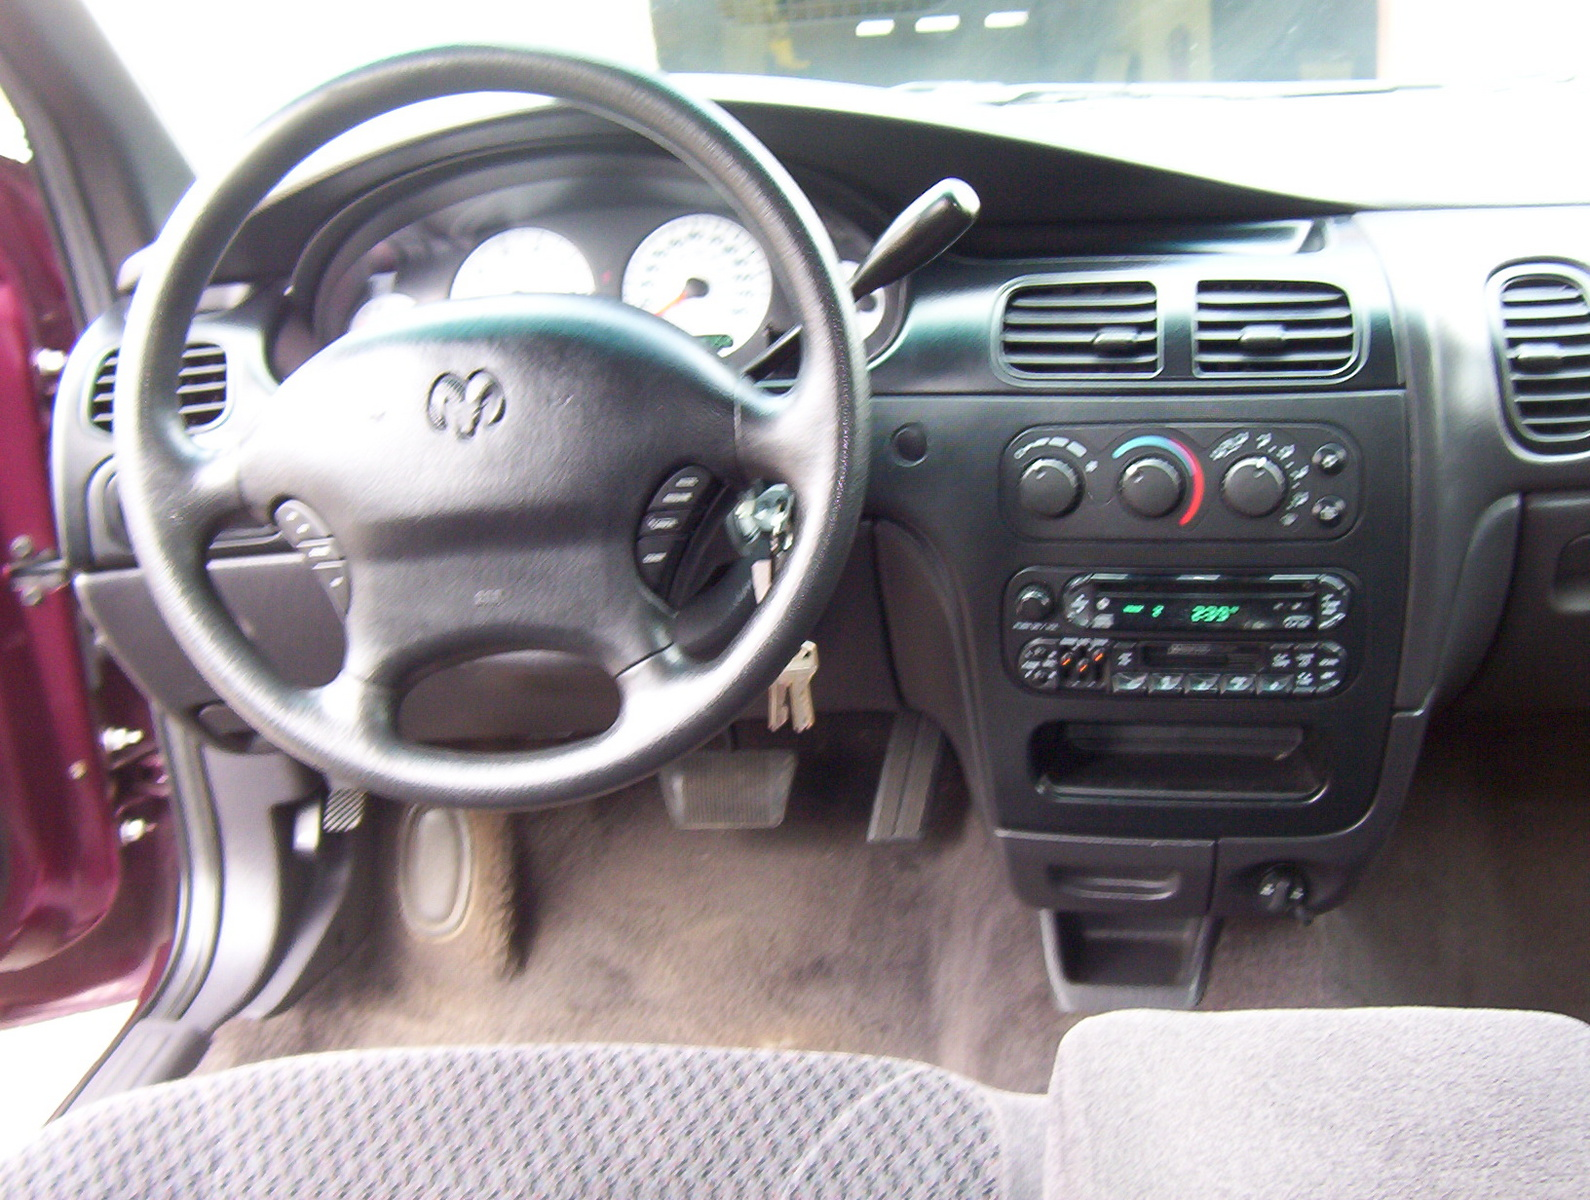 DODGE INTREPID ES interior